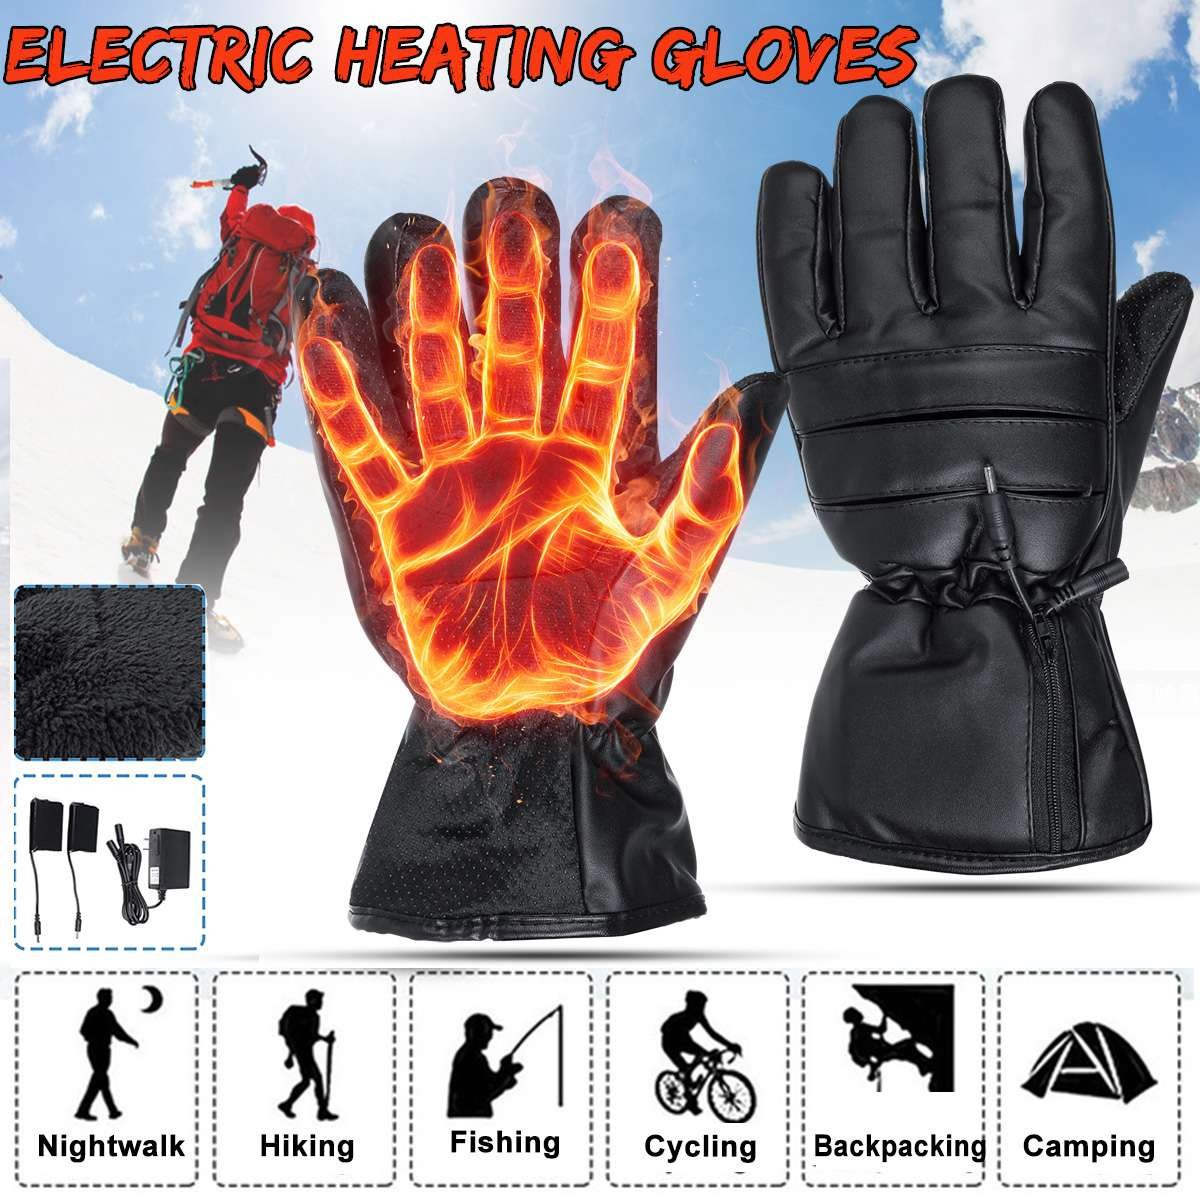 Windproof Ski Gloves Waterproof Gloves With Touchscreen Function Snowboard Heated Gloves Warm Snowmobile Snow Gloves Men Women